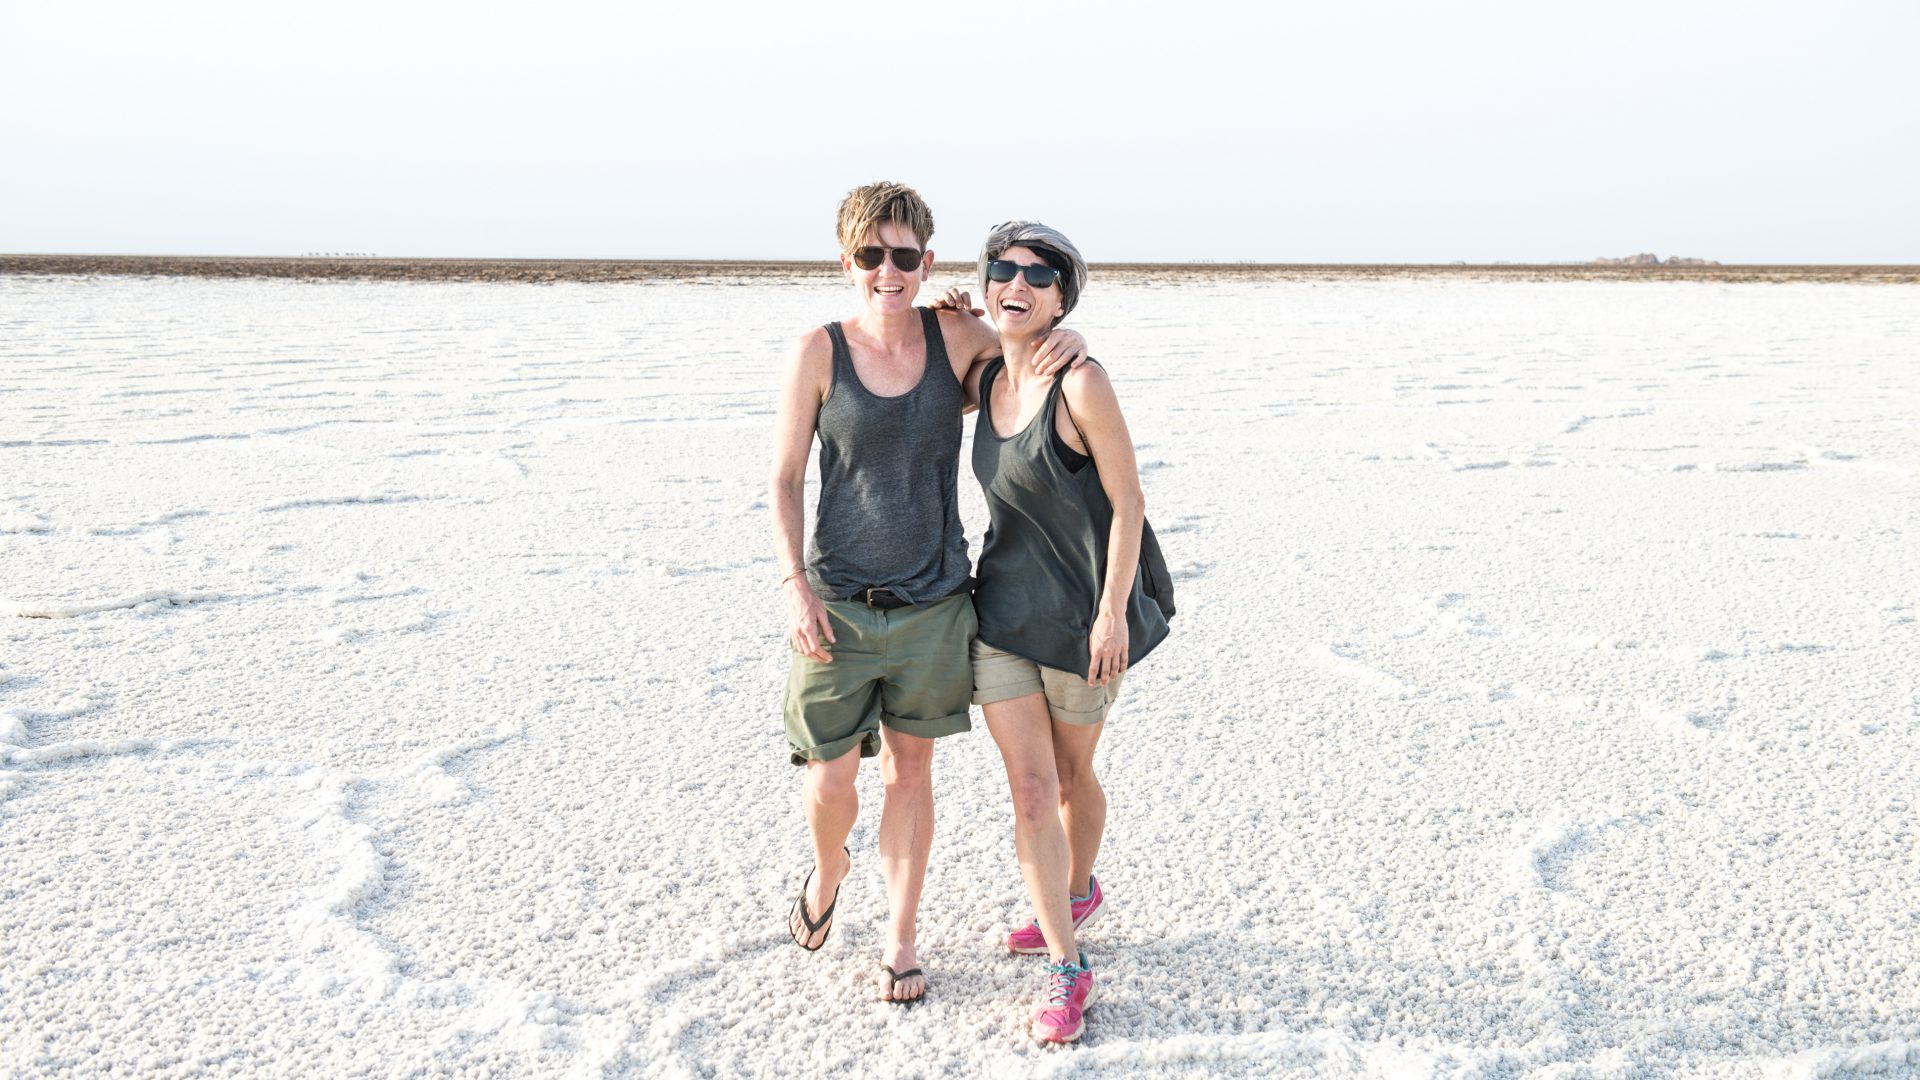 Two women can be seen standing in the white salt of the salt plains, located in the North East of Ethiopia.